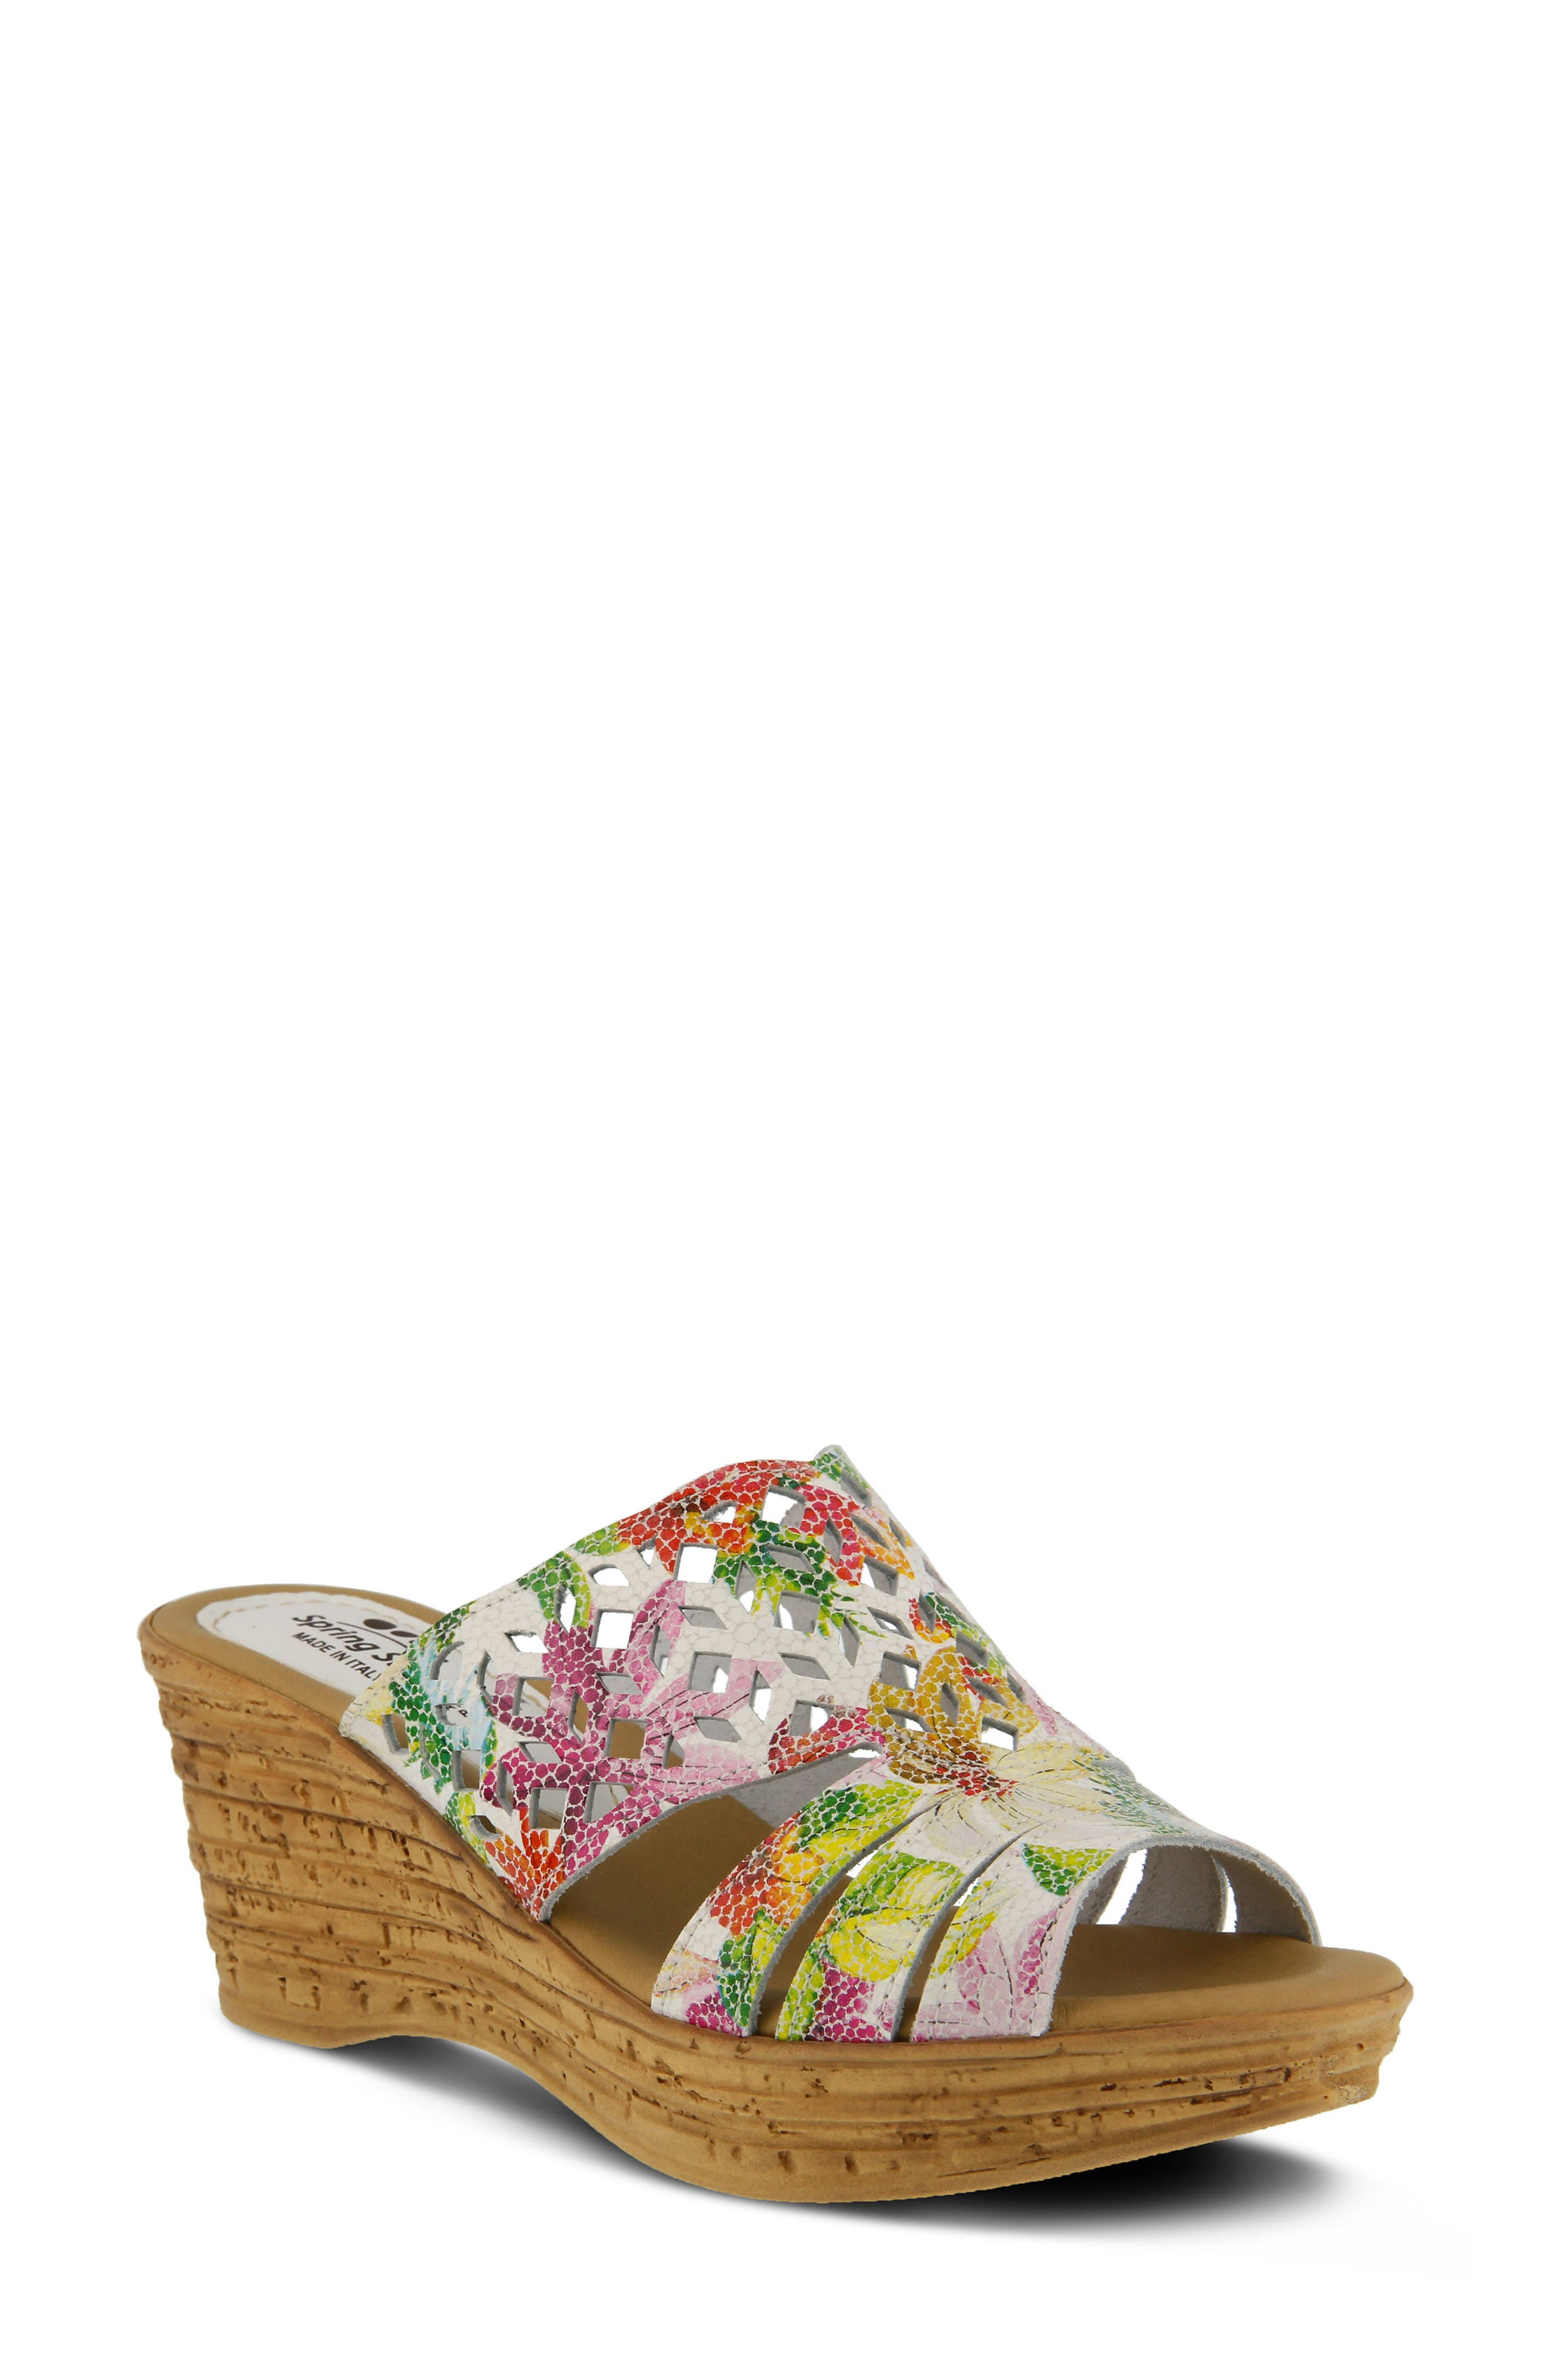 SPRING STEP Viniko Platform Wedge Sandal, Main, color, WHITE LEATHER